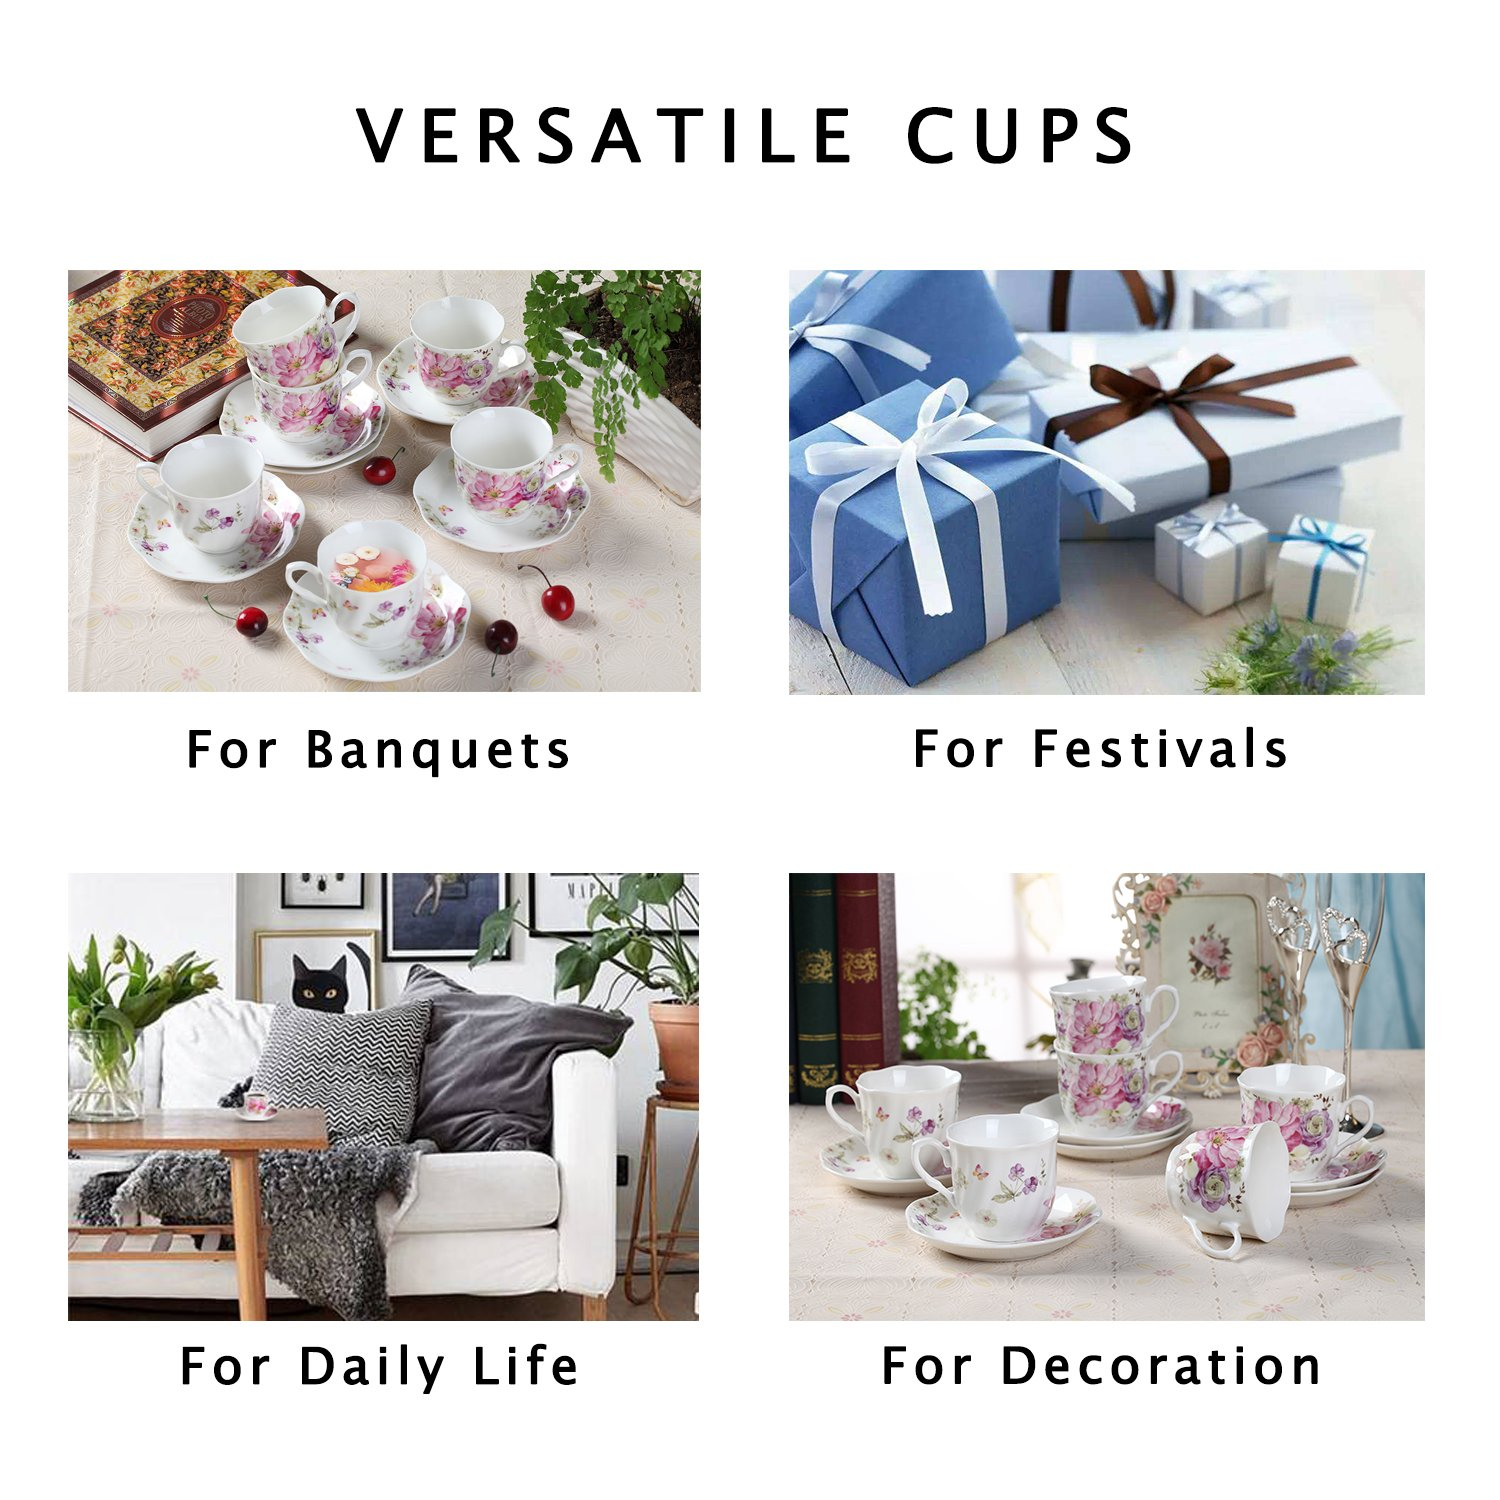 7OZ Coffee Cups and Saucers Set 6 PCS 220 ML Tea Cup Sets with Flower Painting Pattern New Bone China Porcelain Cups for Mocha Cappuccino